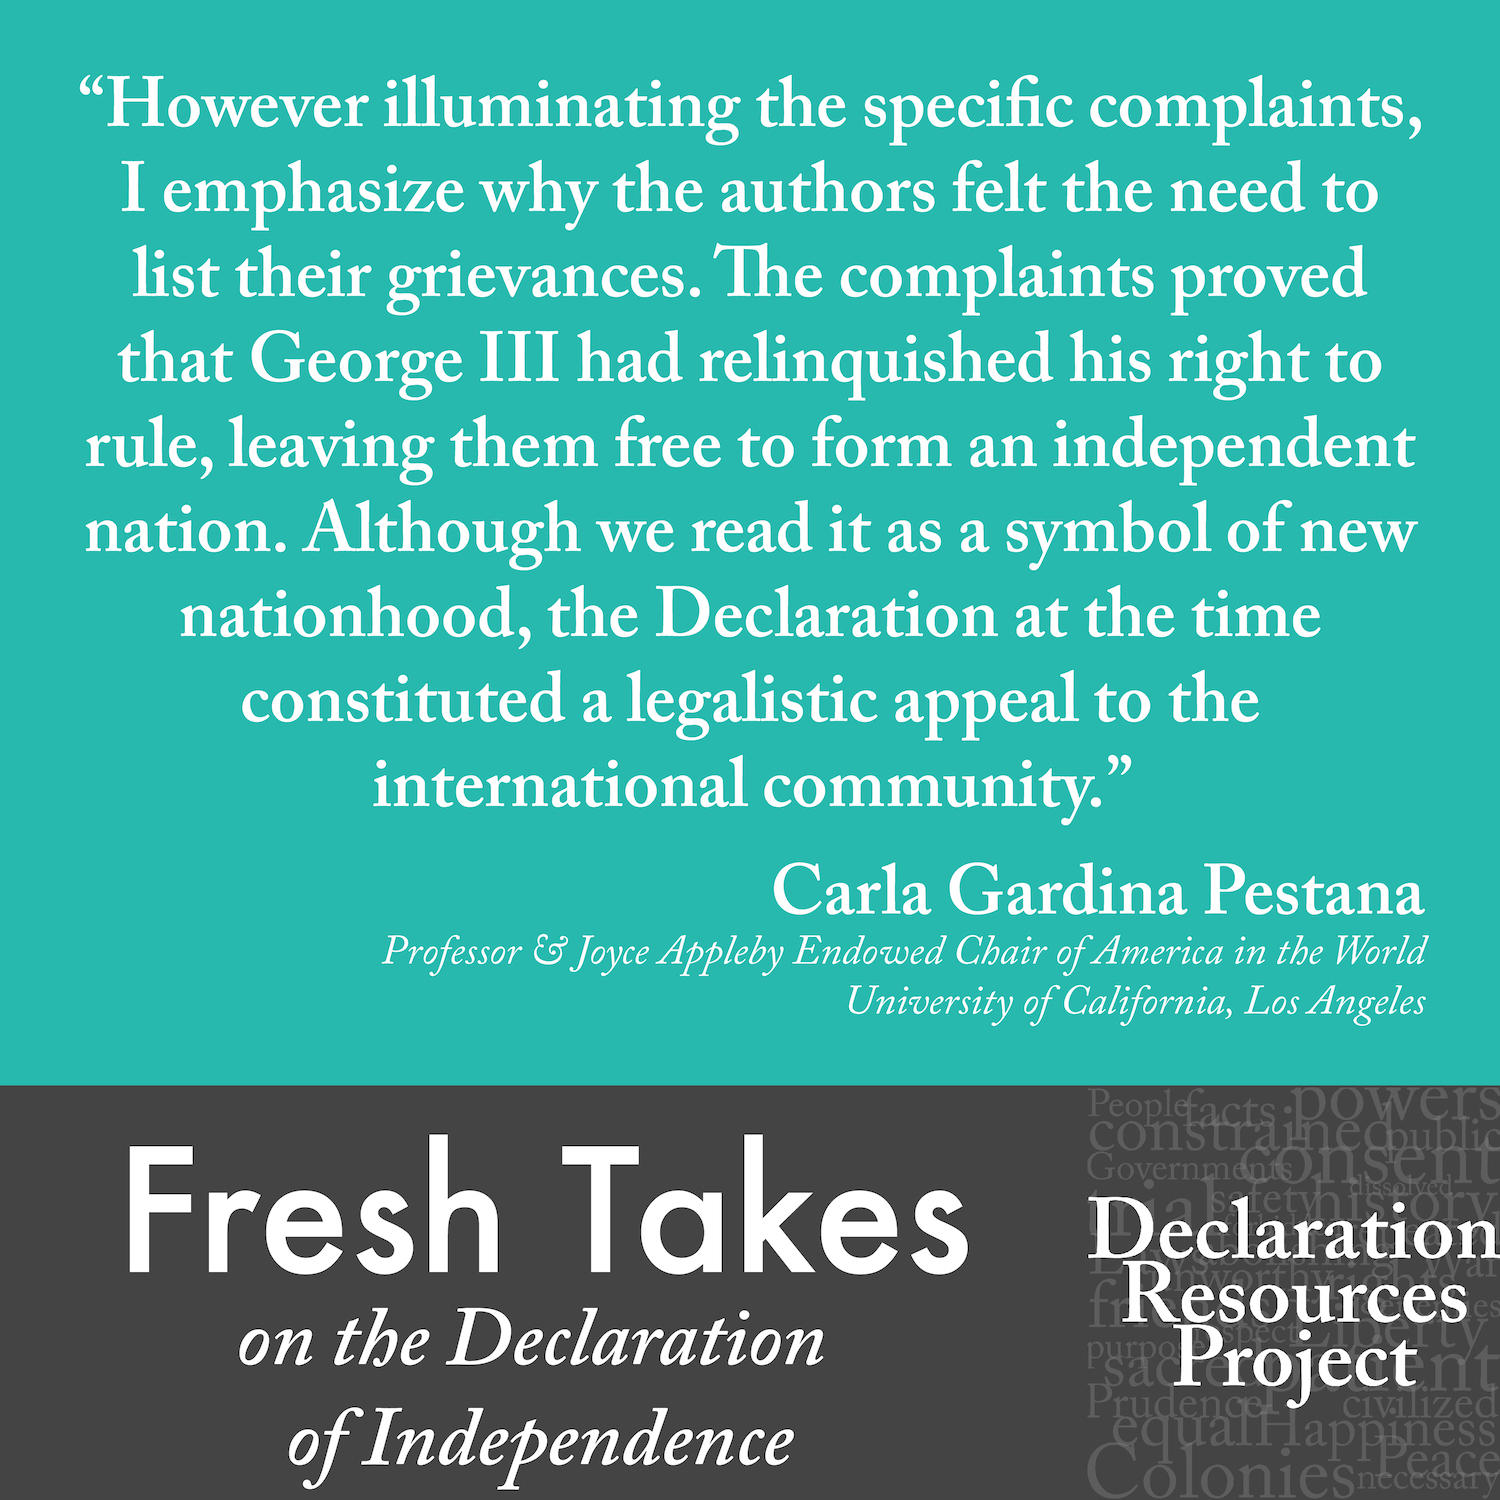 Carla Gardina Pestana's Fresh Take on the Declaration of Independence